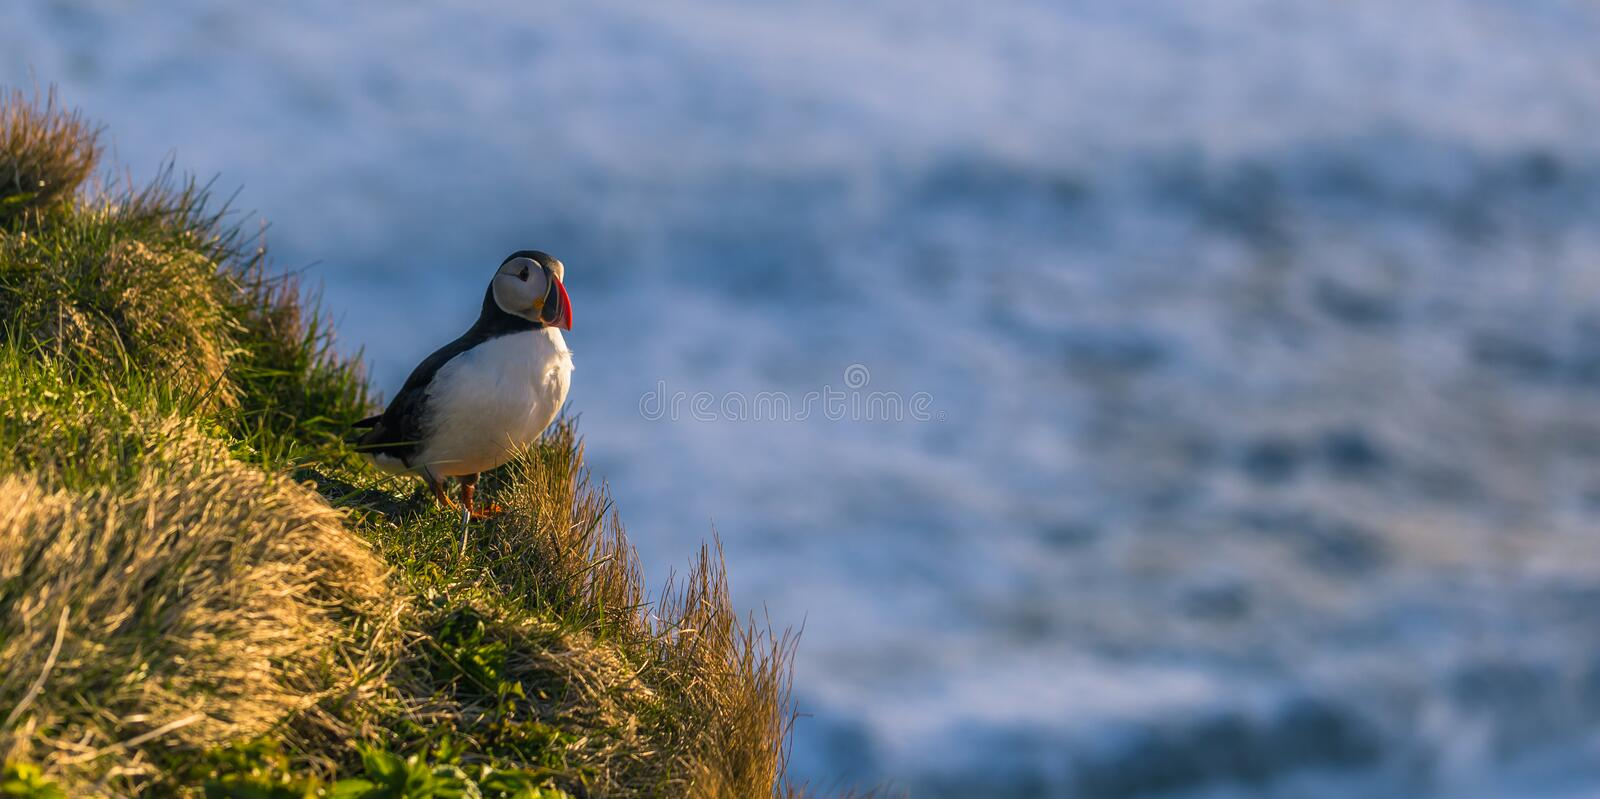 Dyrholaey - May 04, 2018: Wild Puffin bird in Dyrholaey, Iceland stock image